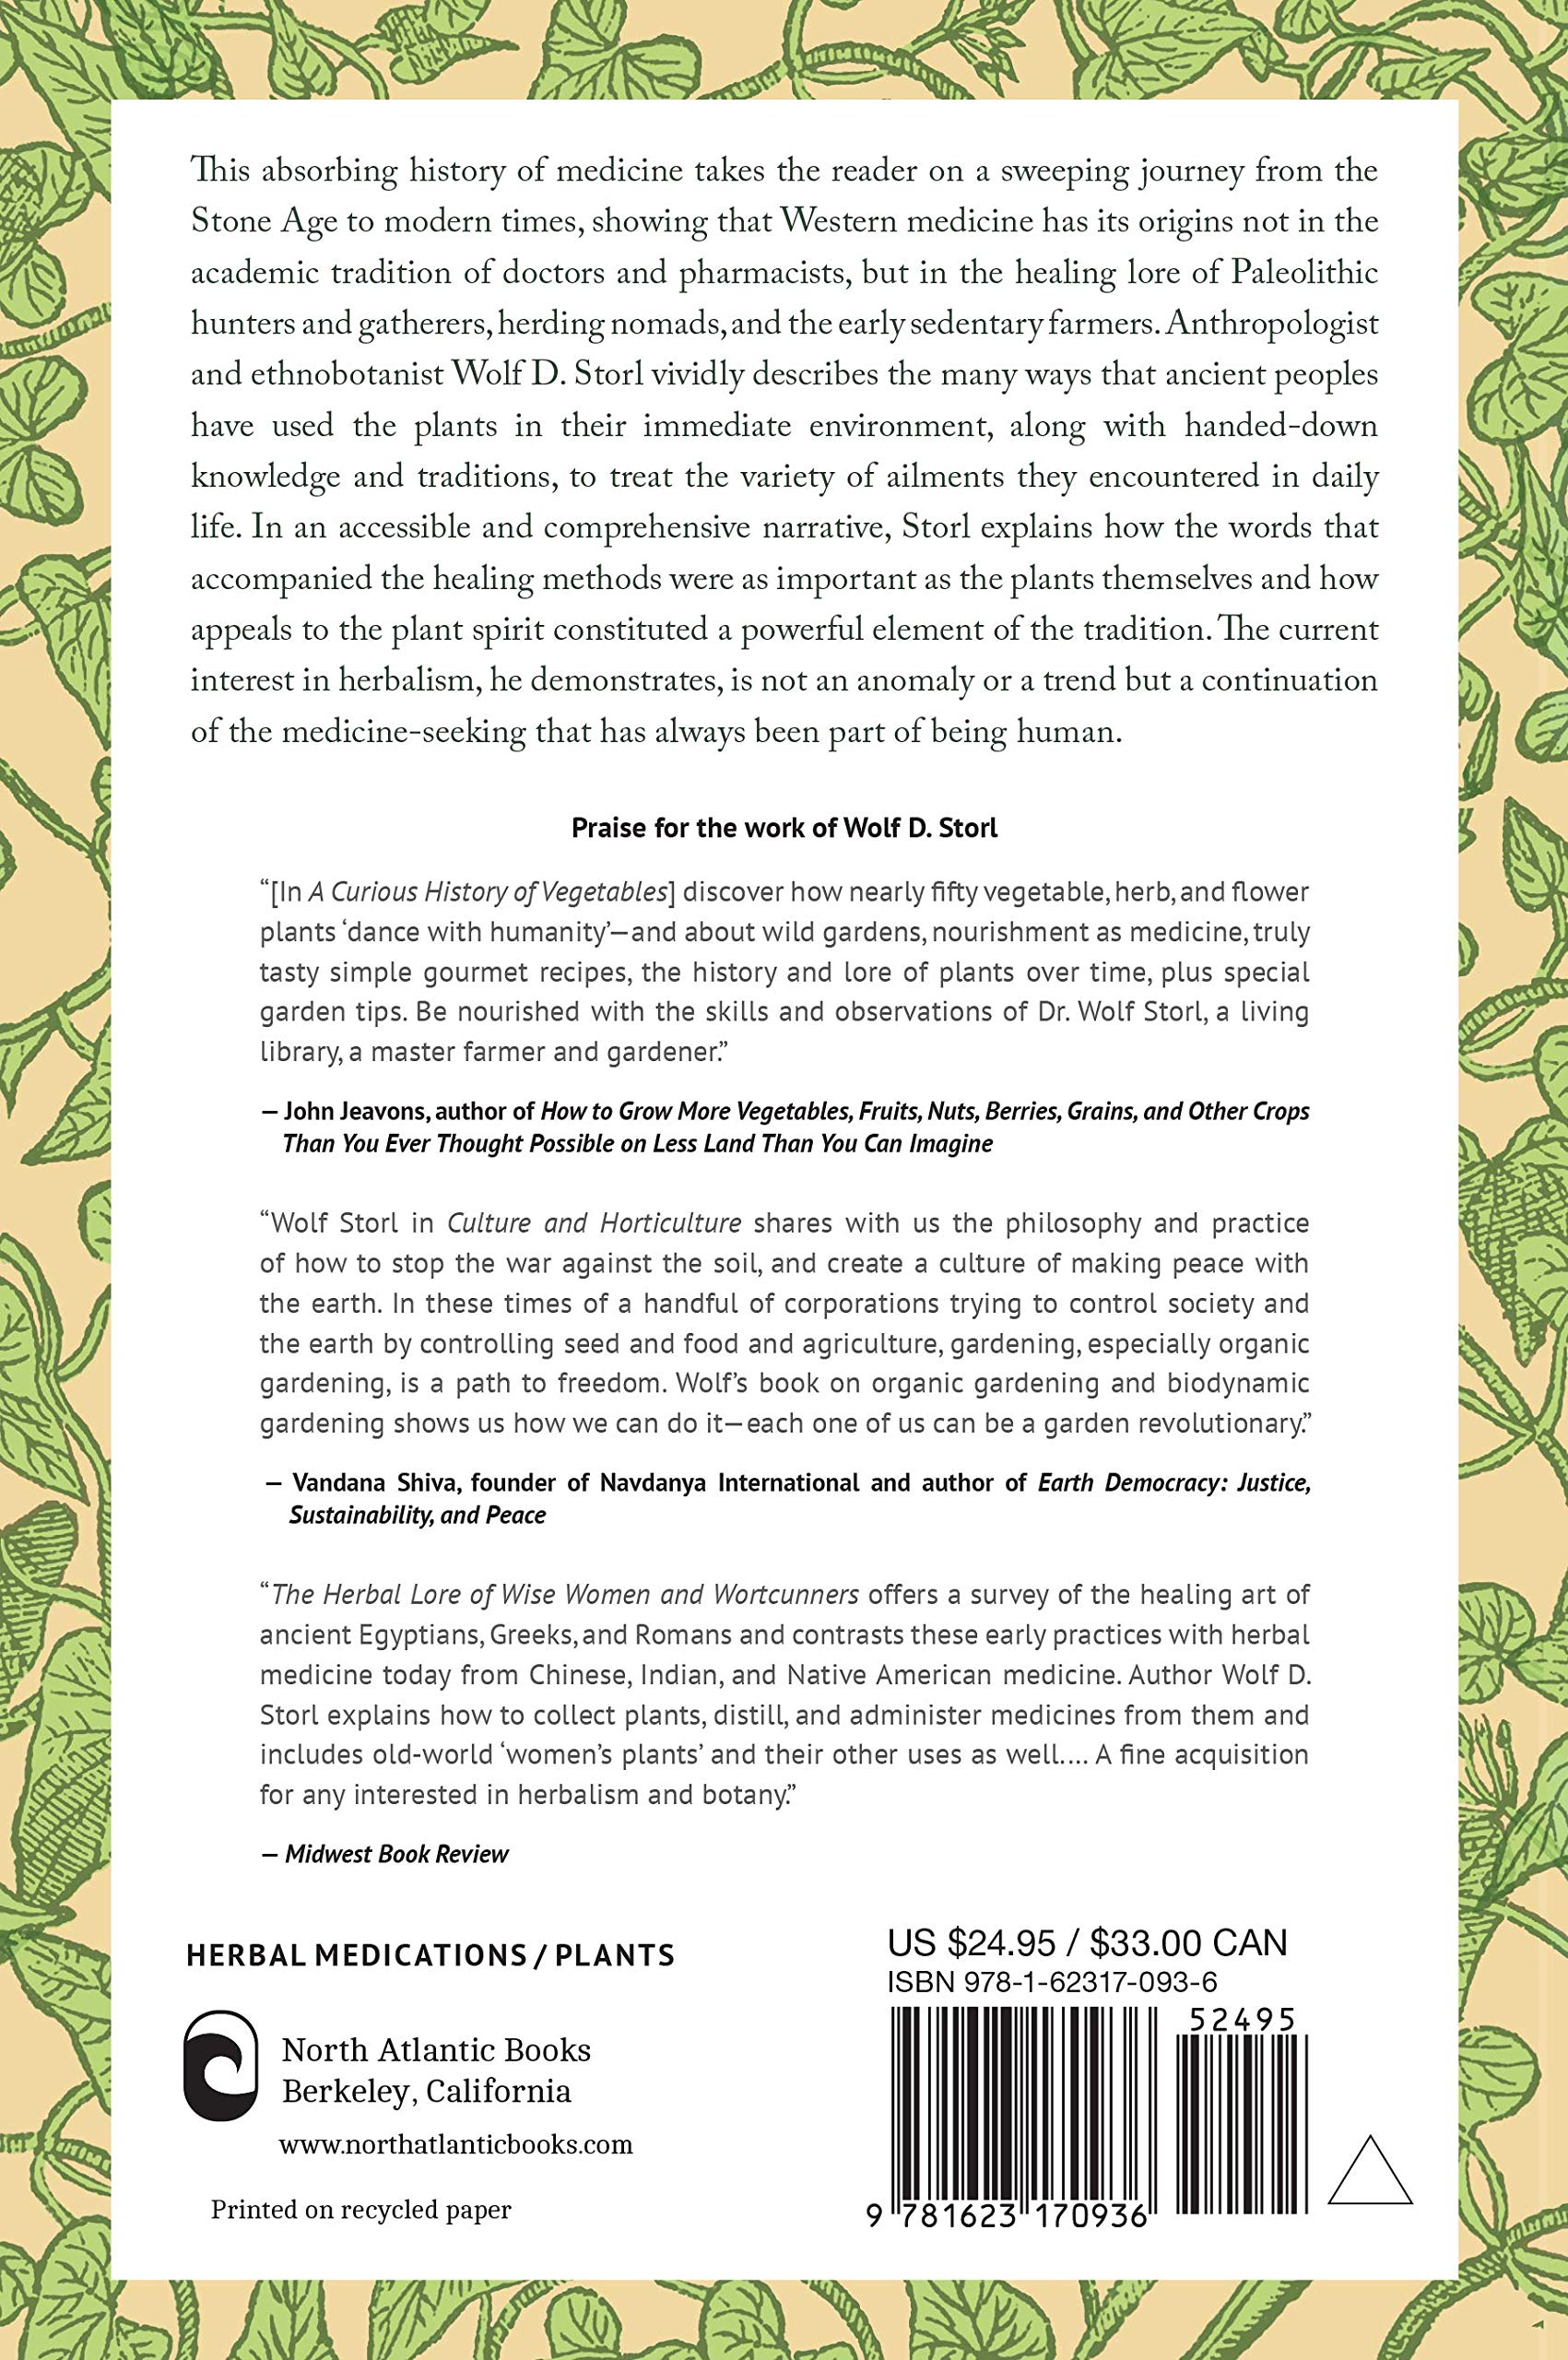 The Untold History of Healing: Plant Lore and Medicinal Magic from